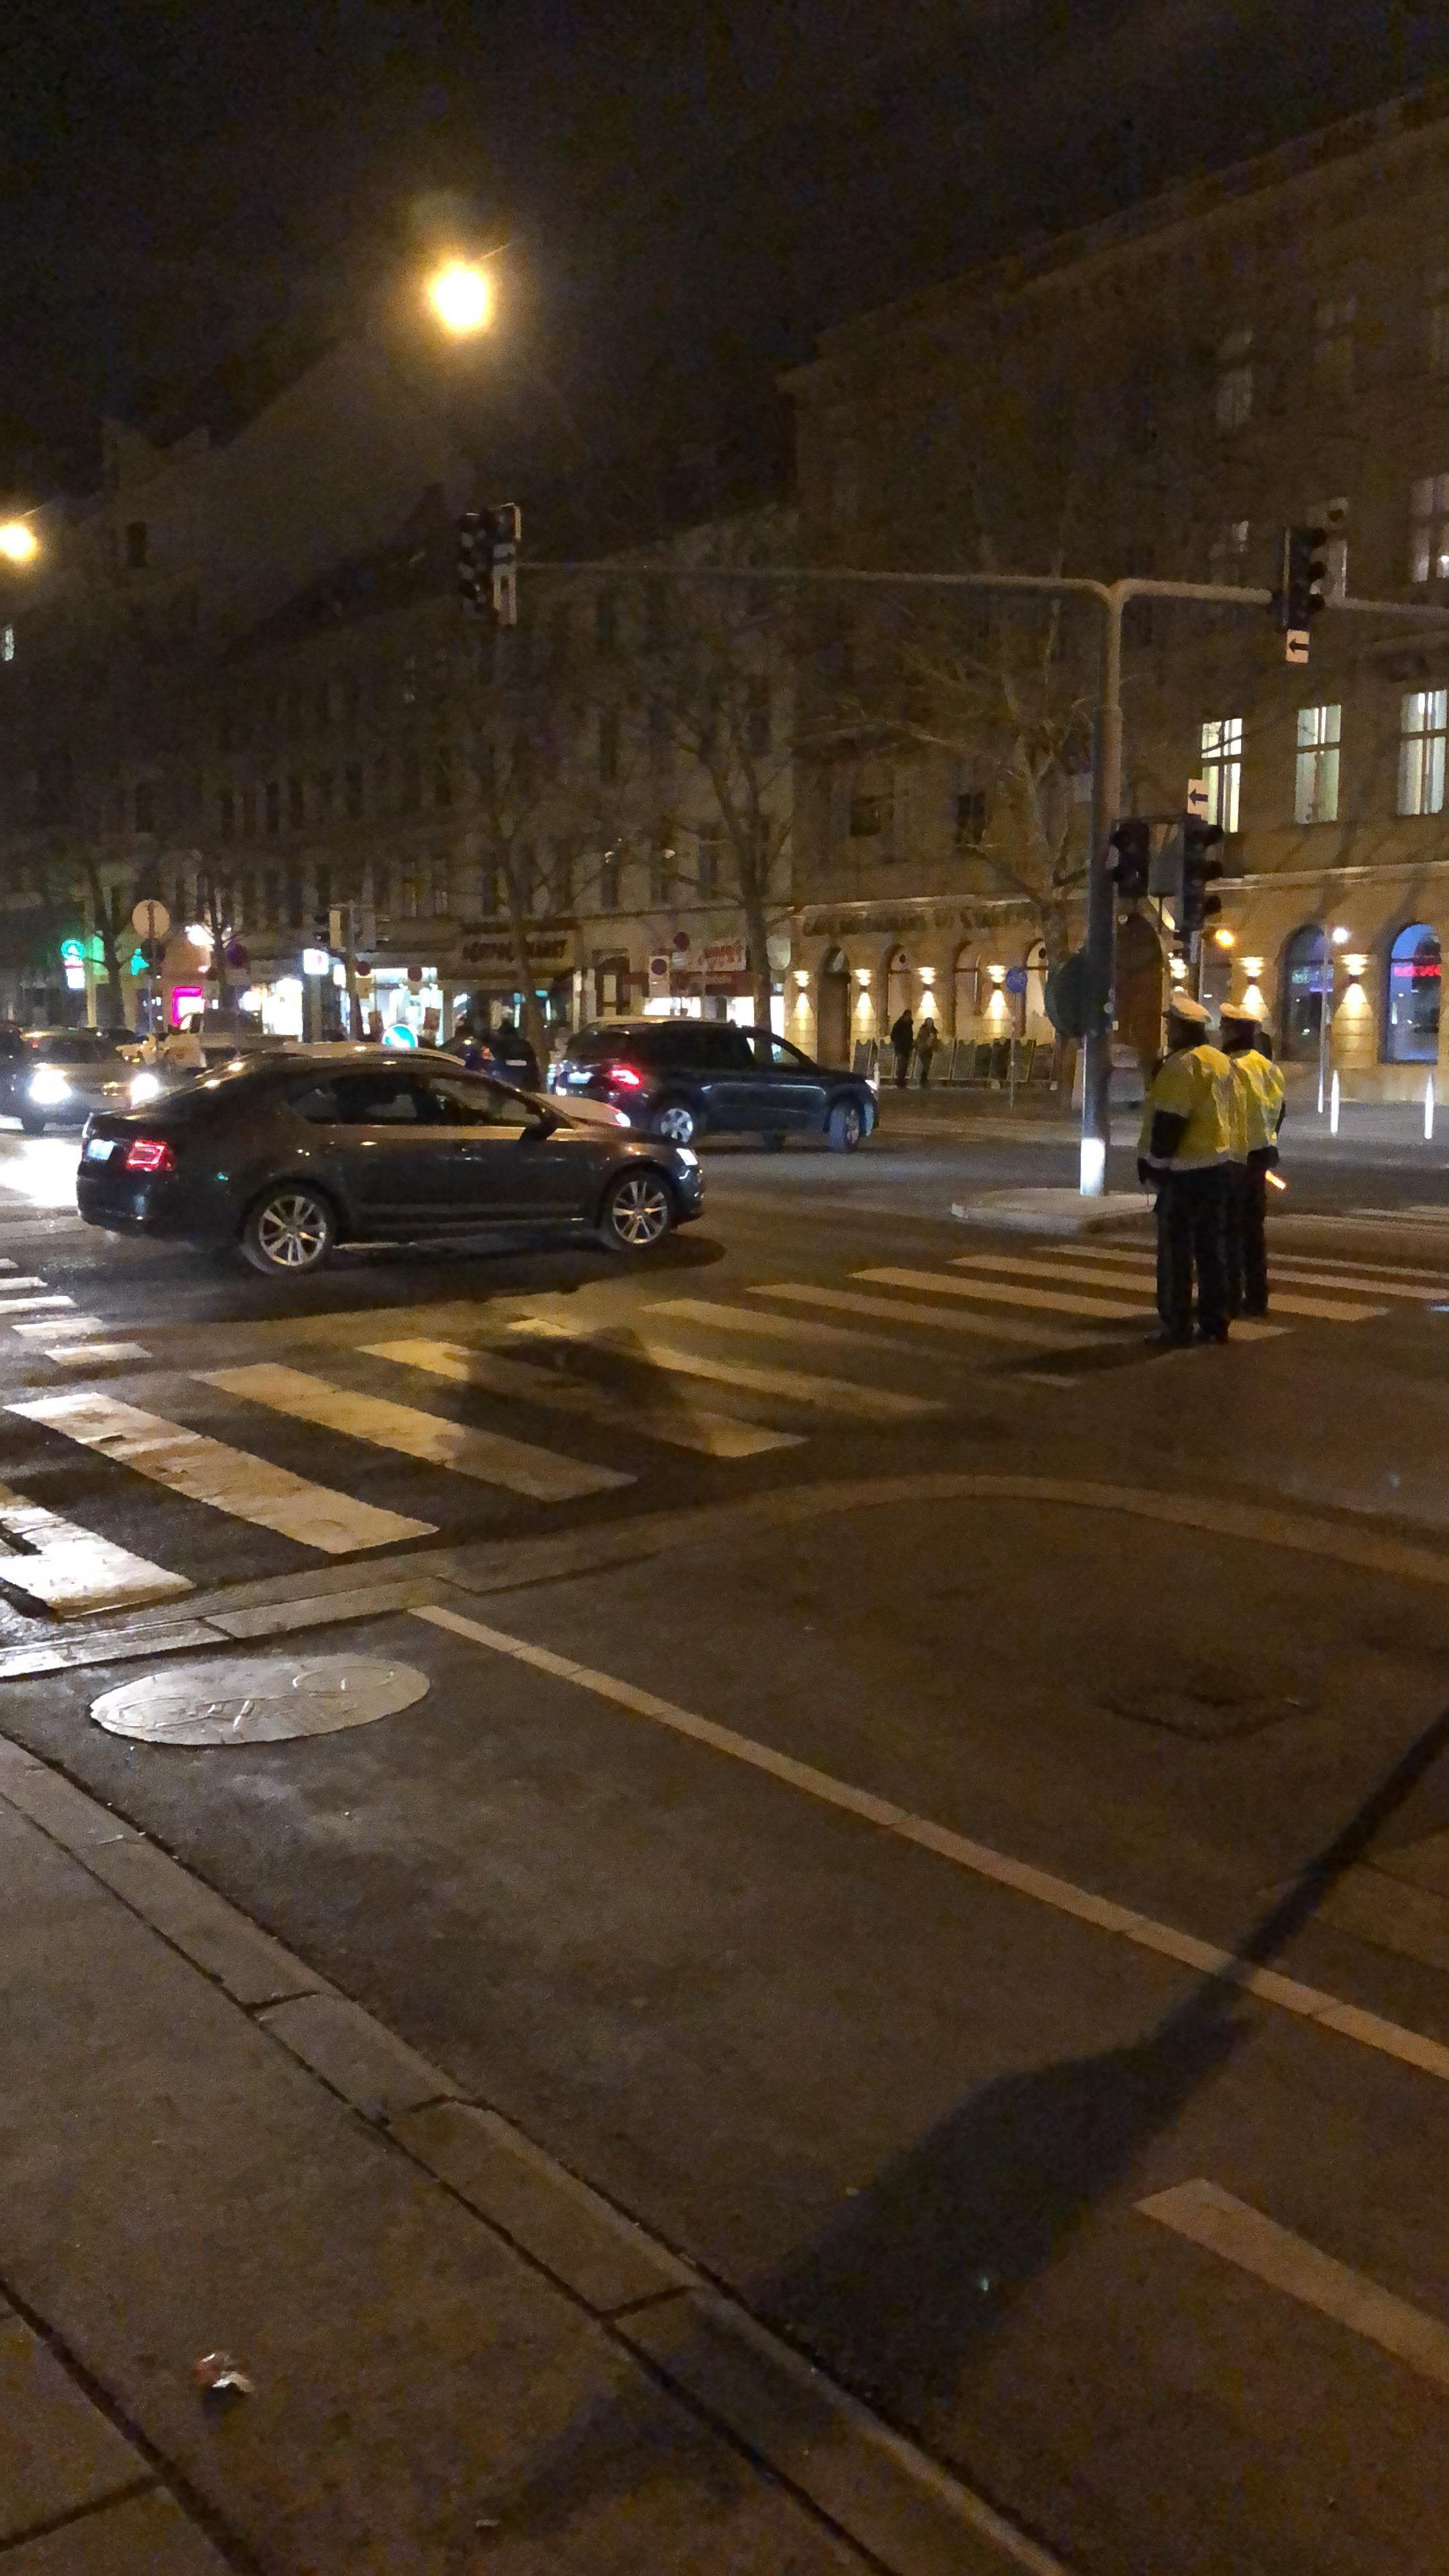 Police say that a knife attacker injured family members near a subway station in Vienna, Austria on March 7, 2018.